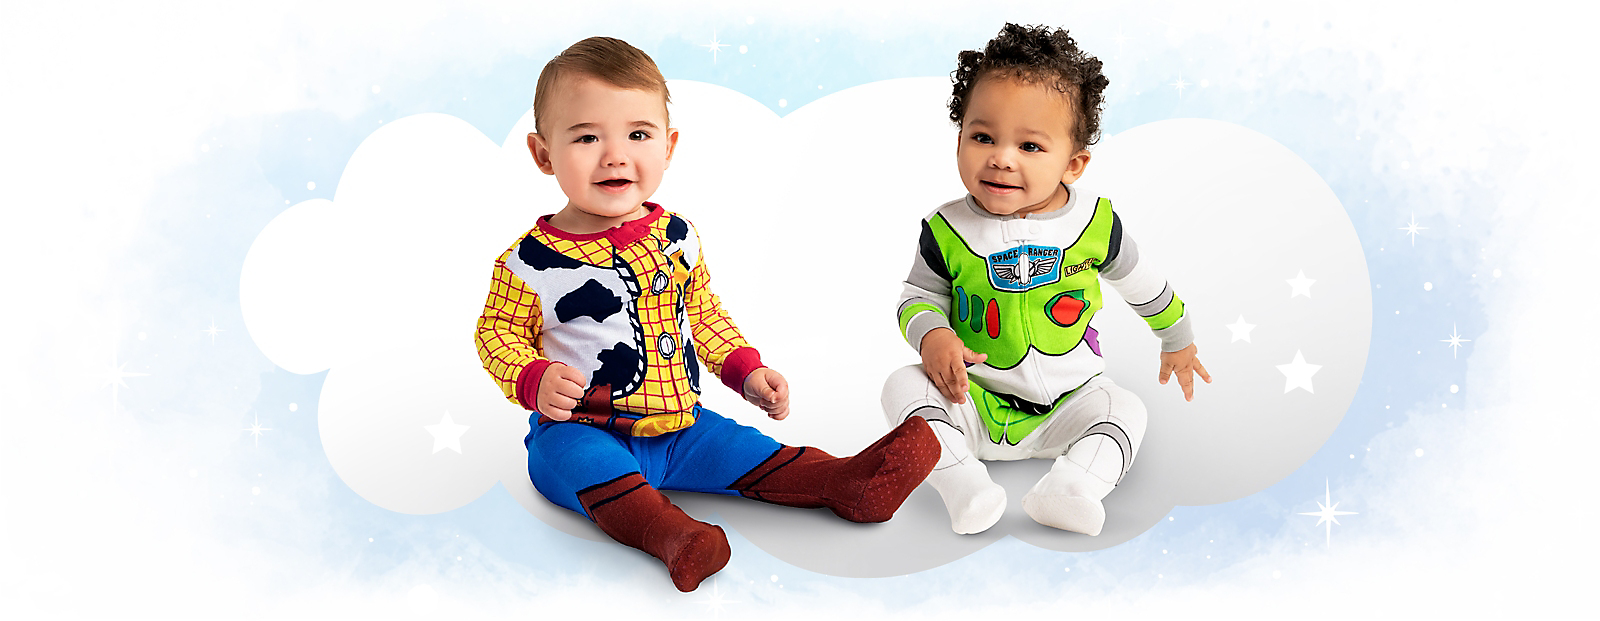 AmaZZZingly Cute The littlest sleepers create the <br> biggest smiles withBuzz, Woody & more.